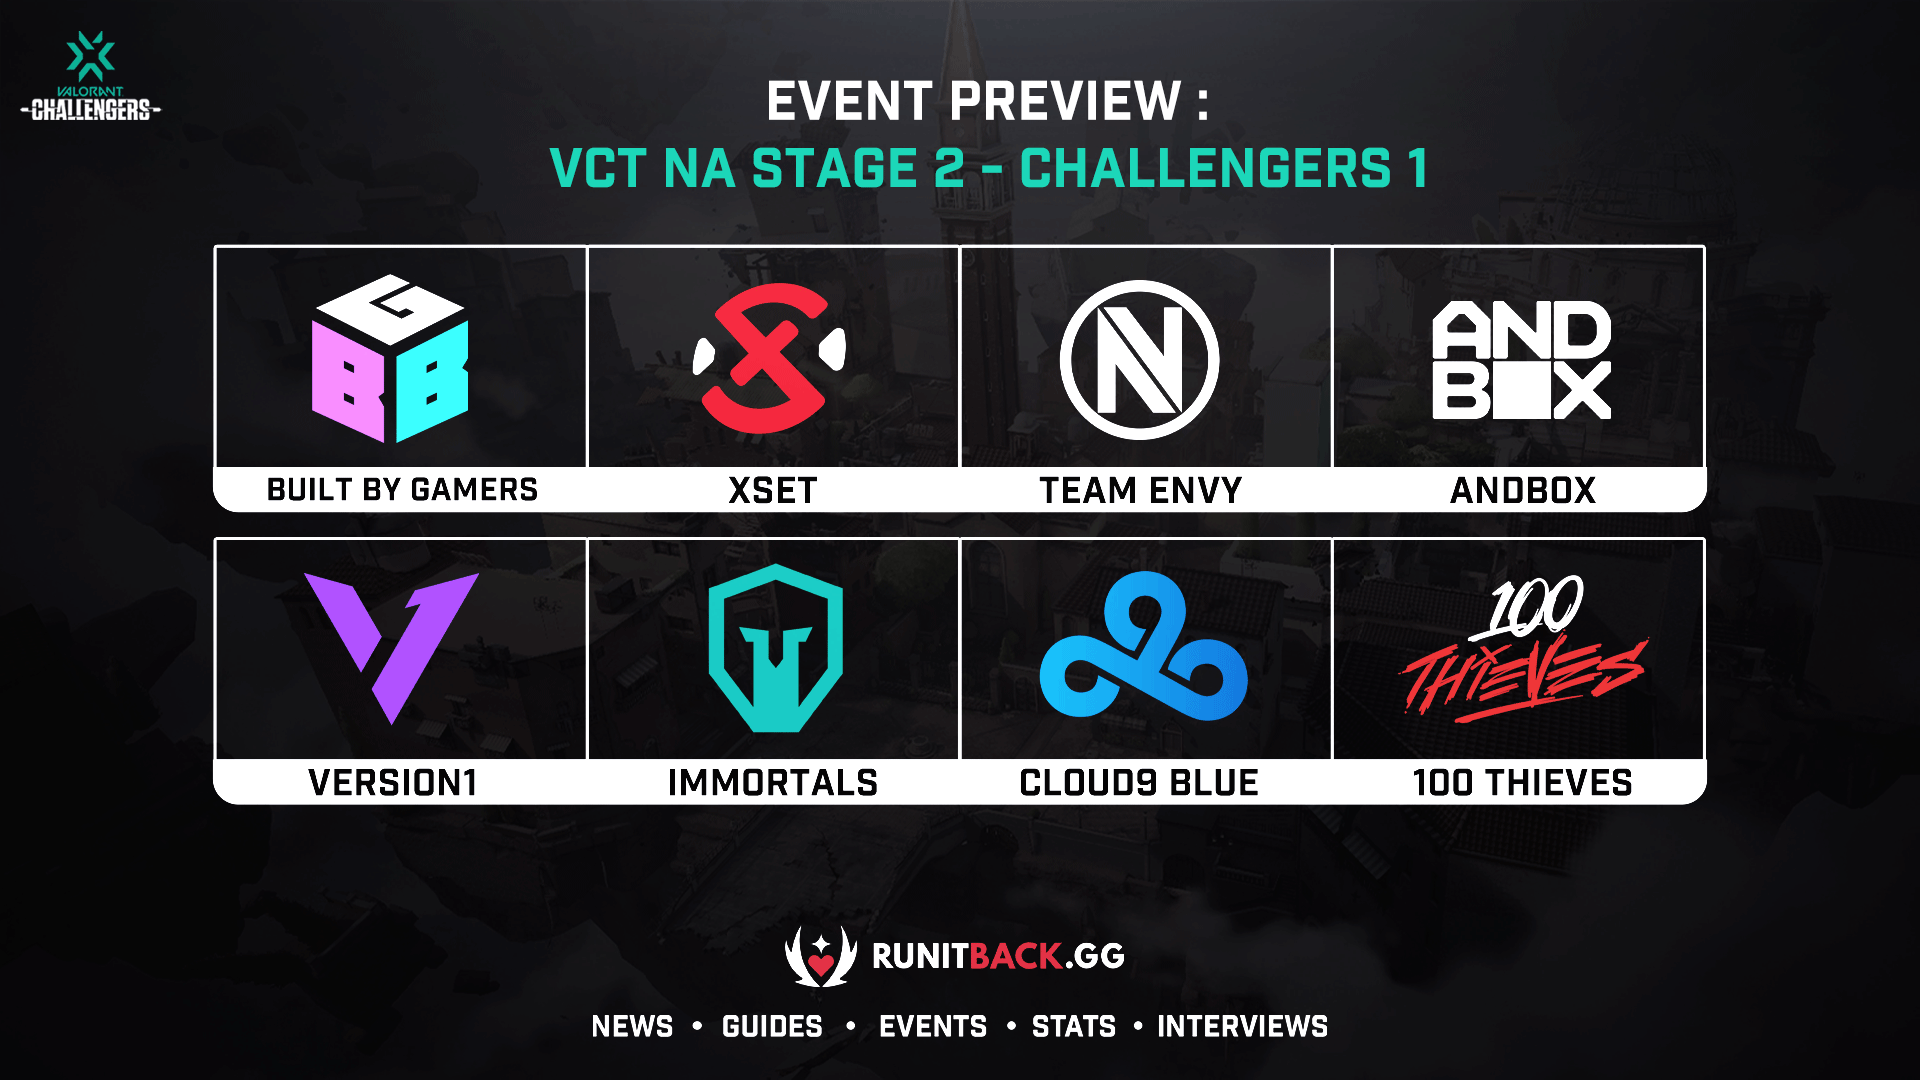 VCT North America Challengers 1 Main Event Preview